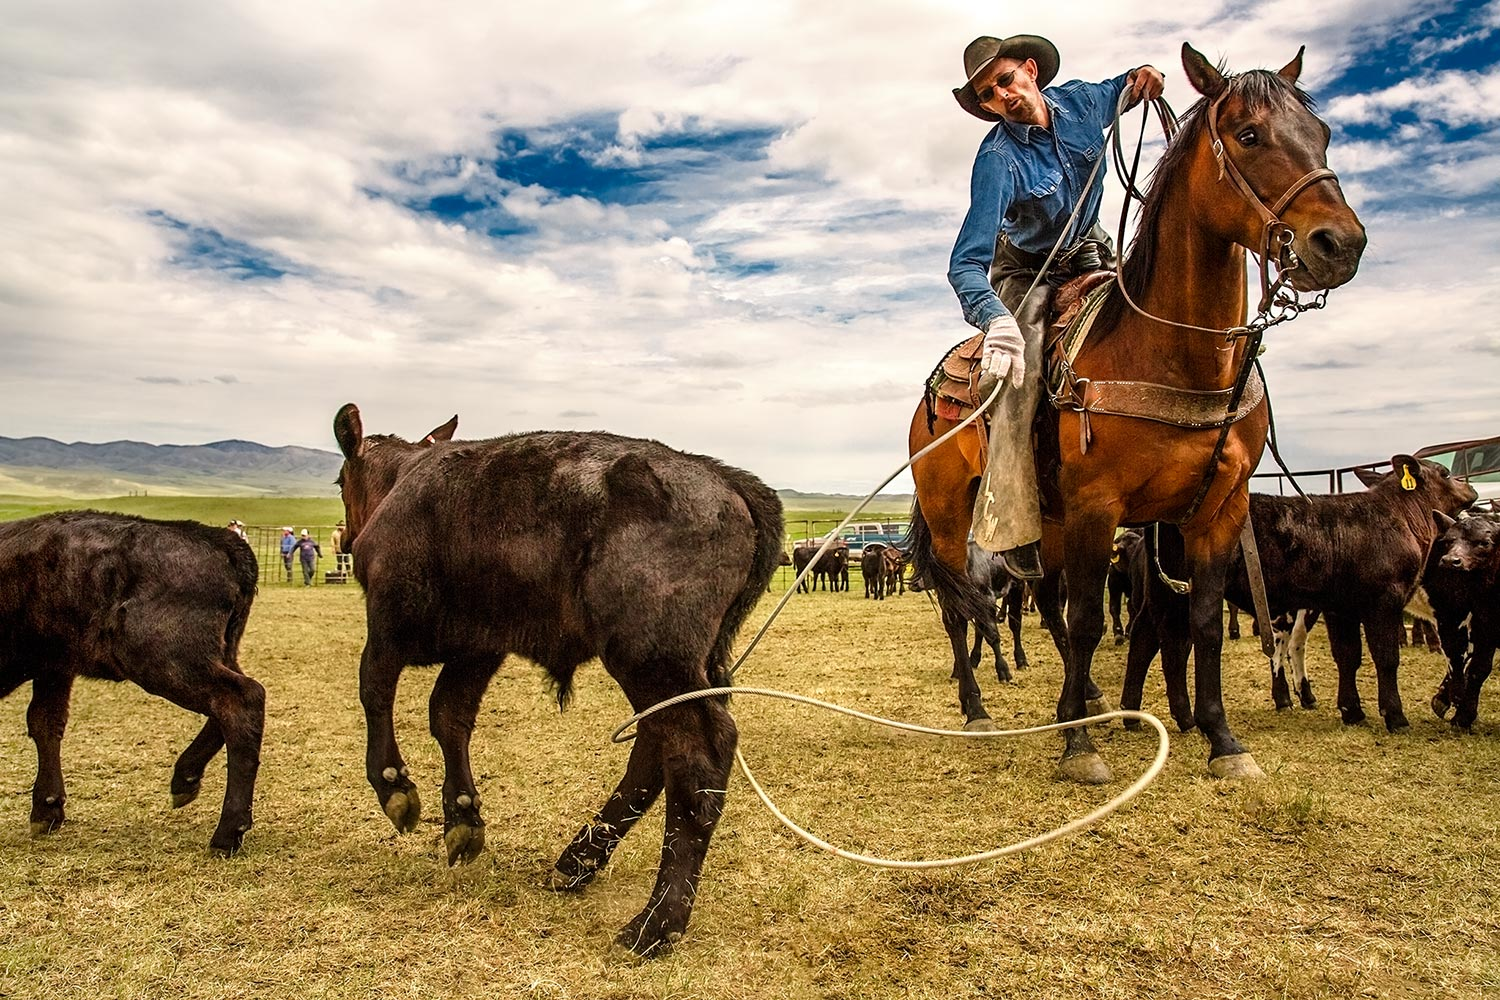 Photos-of-Cowboys-Roping-Cattle.jpg